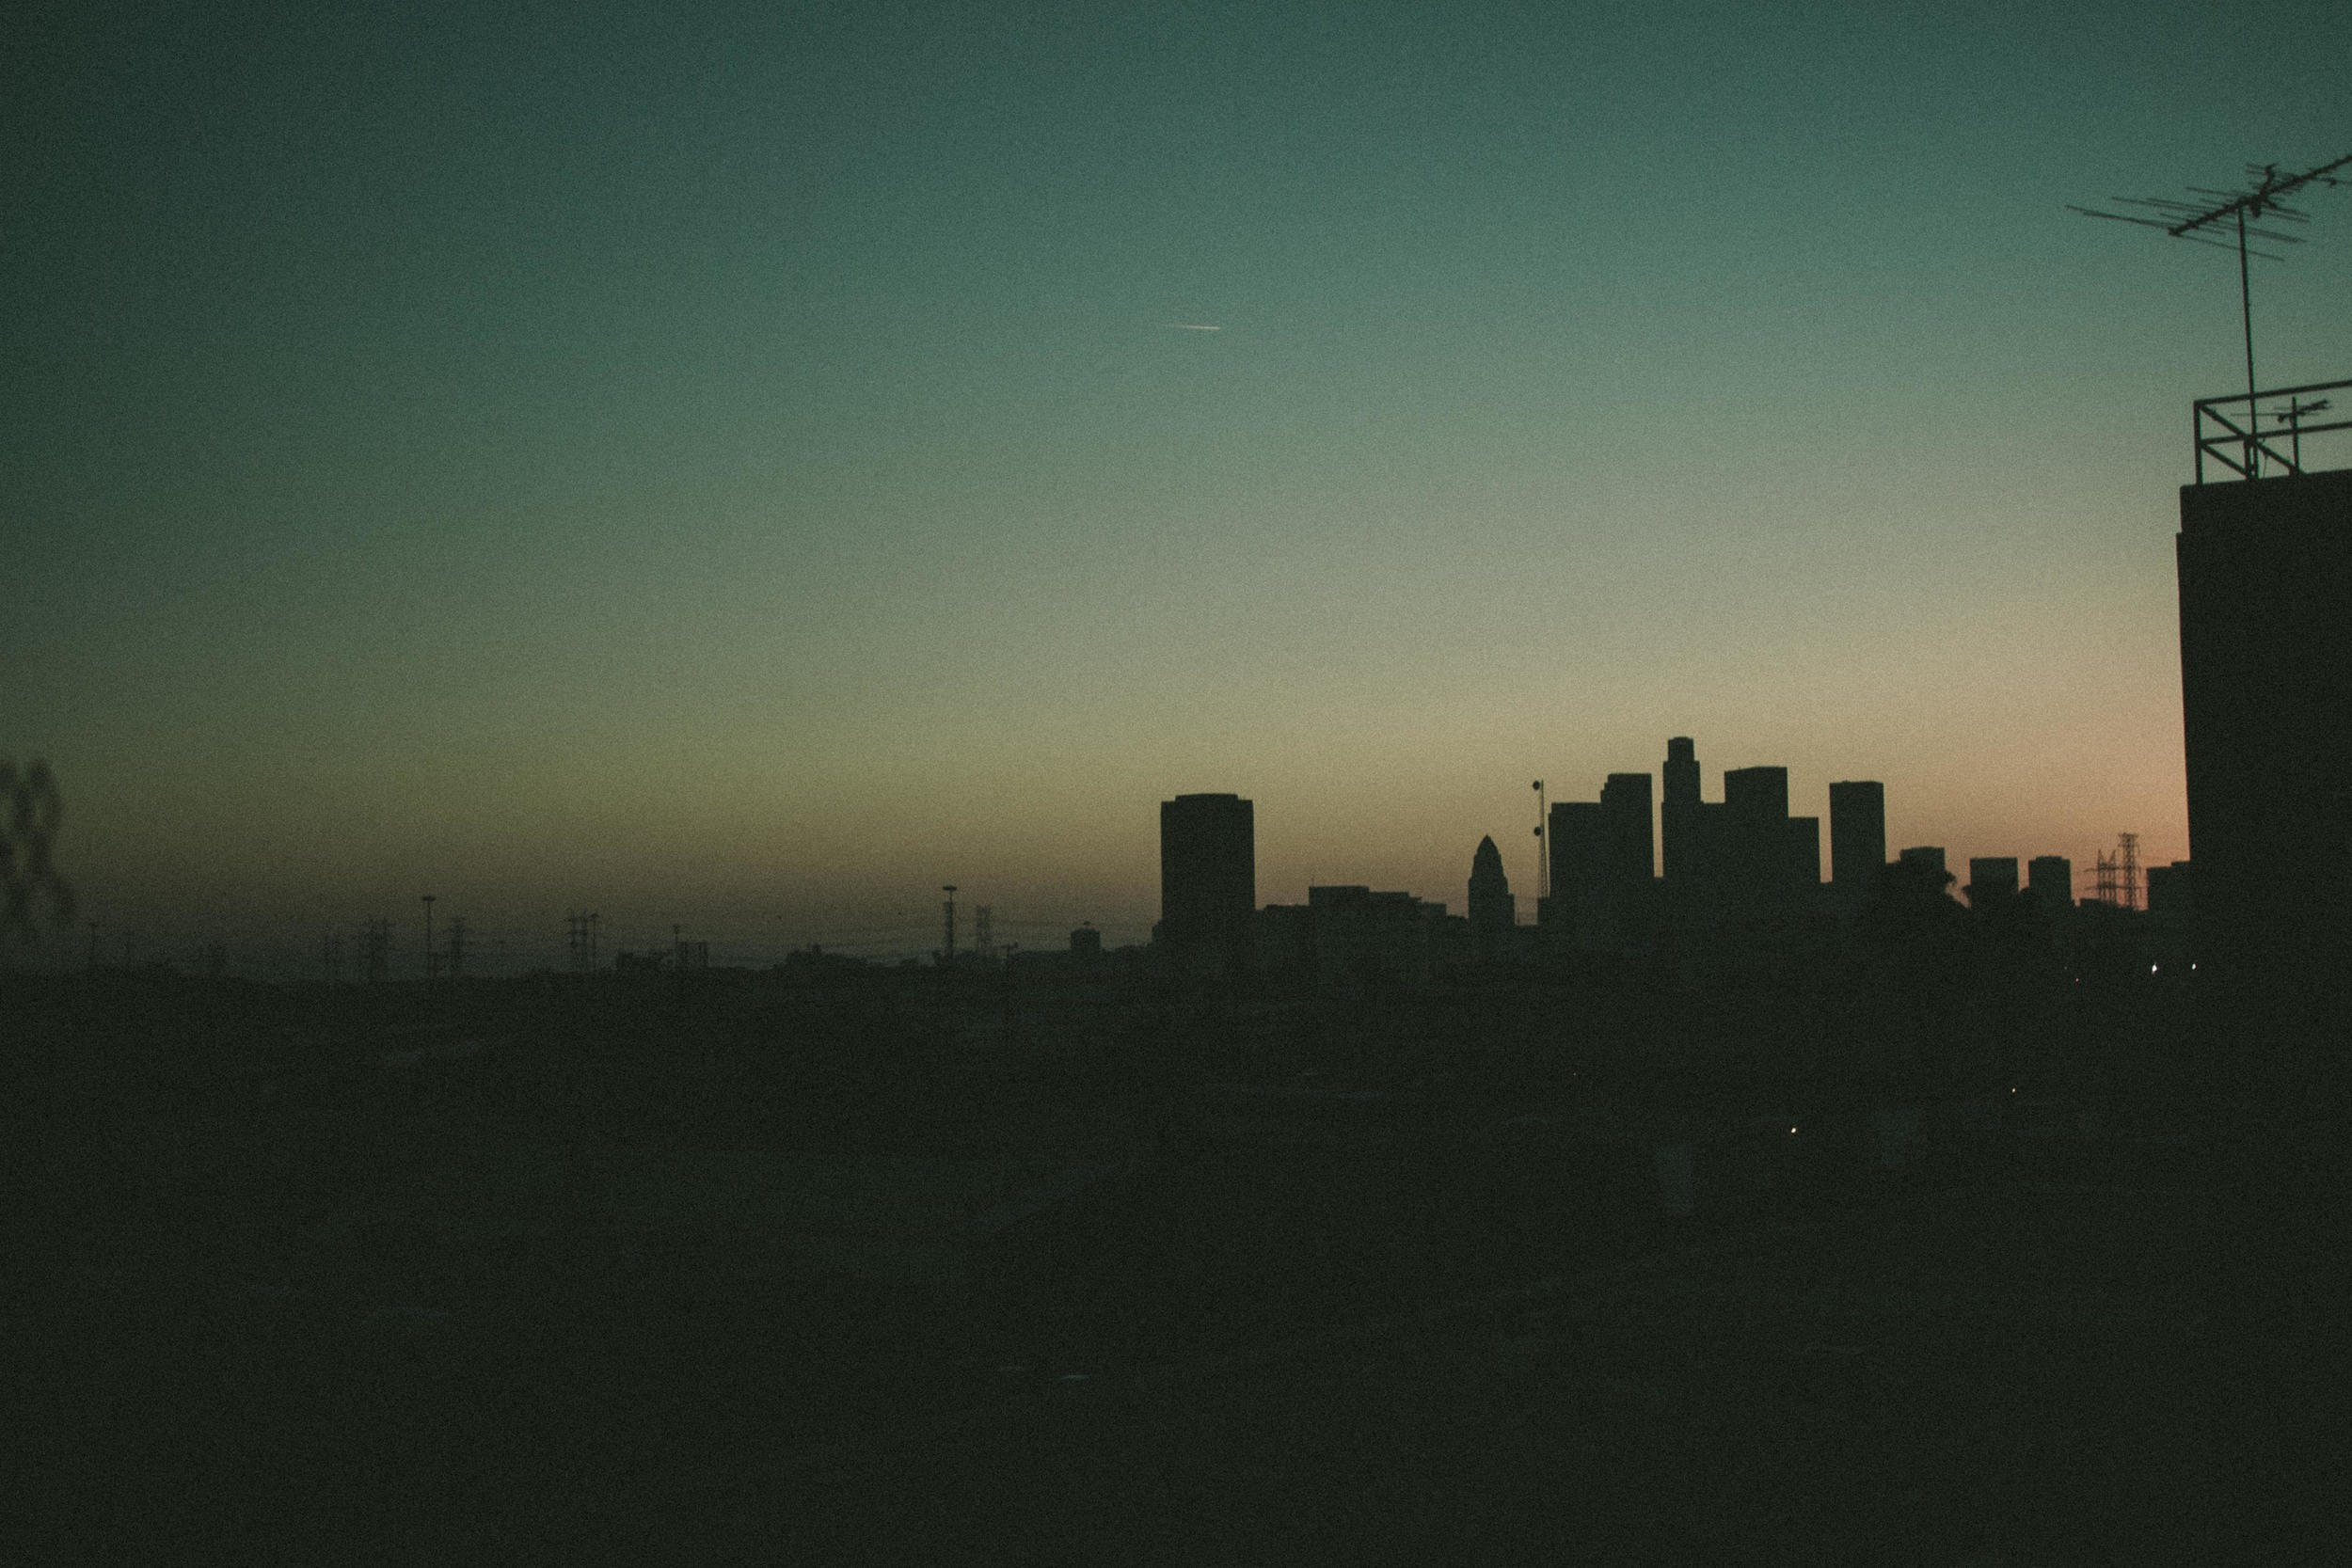 THE ETERNAL CHILD // DOWNTOWN LOS ANGELES @ DUSK